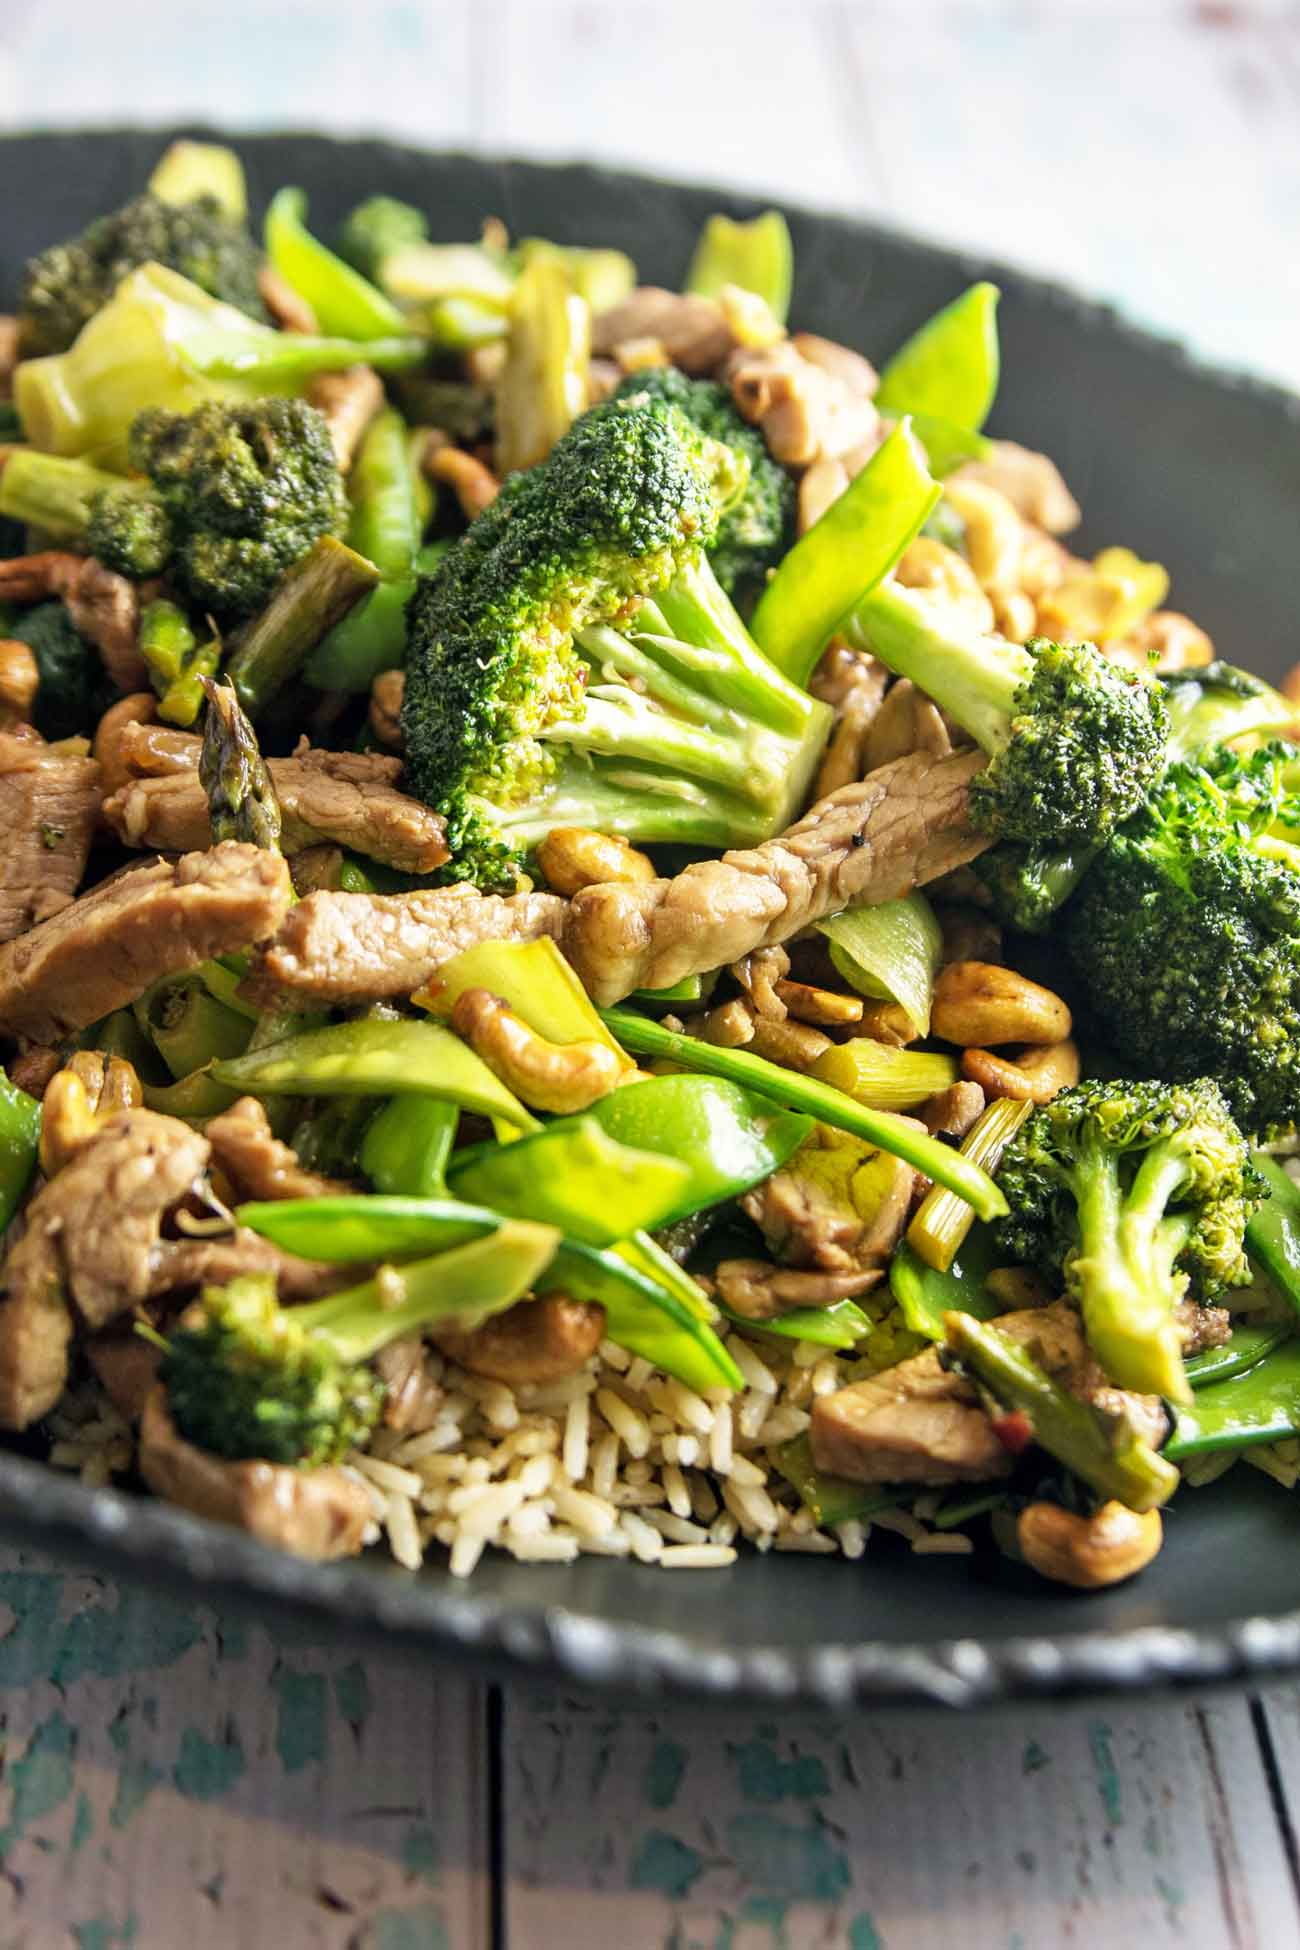 Pork Stir Fry with Cashews: fresh vegetables, crunchy cashews, and marinated pork tenderloin. A delicious, vegetable-heavy dinner, on your table in under 30 minutes. {Bunsen Burner Bakery}